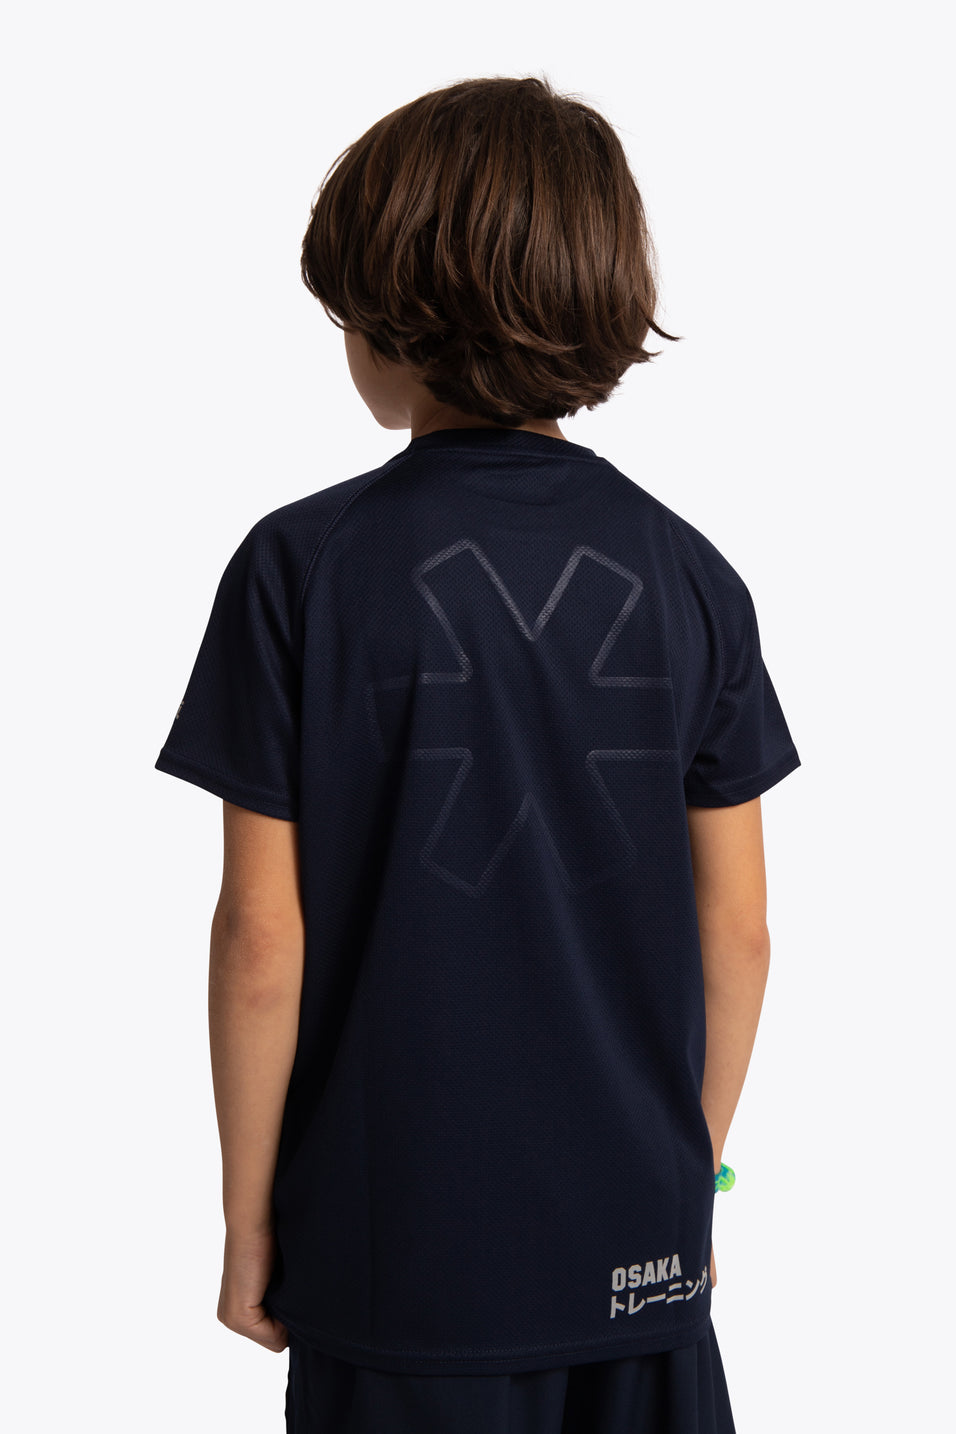 Braxgata Deshi Training Tee - Navy